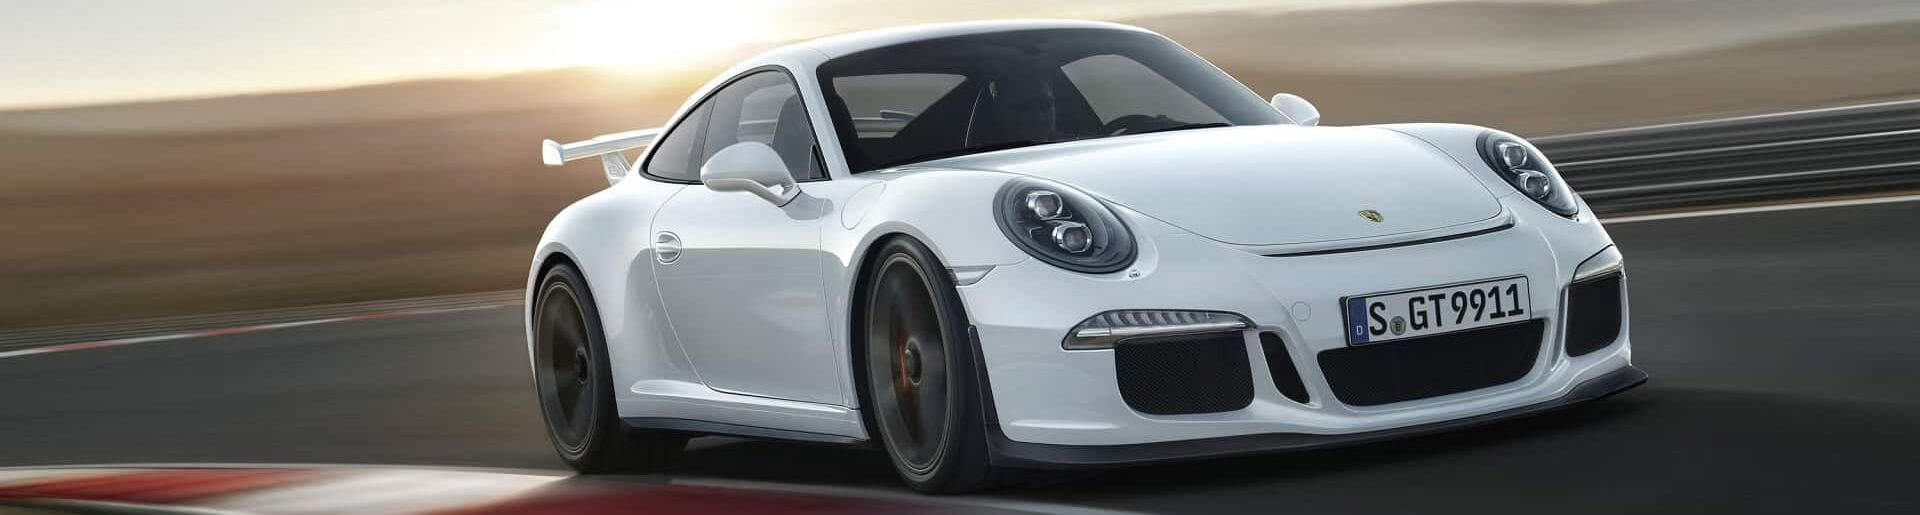 Porsche 911 gt3 rental los angeles la luxury and exotic for One month rental los angeles